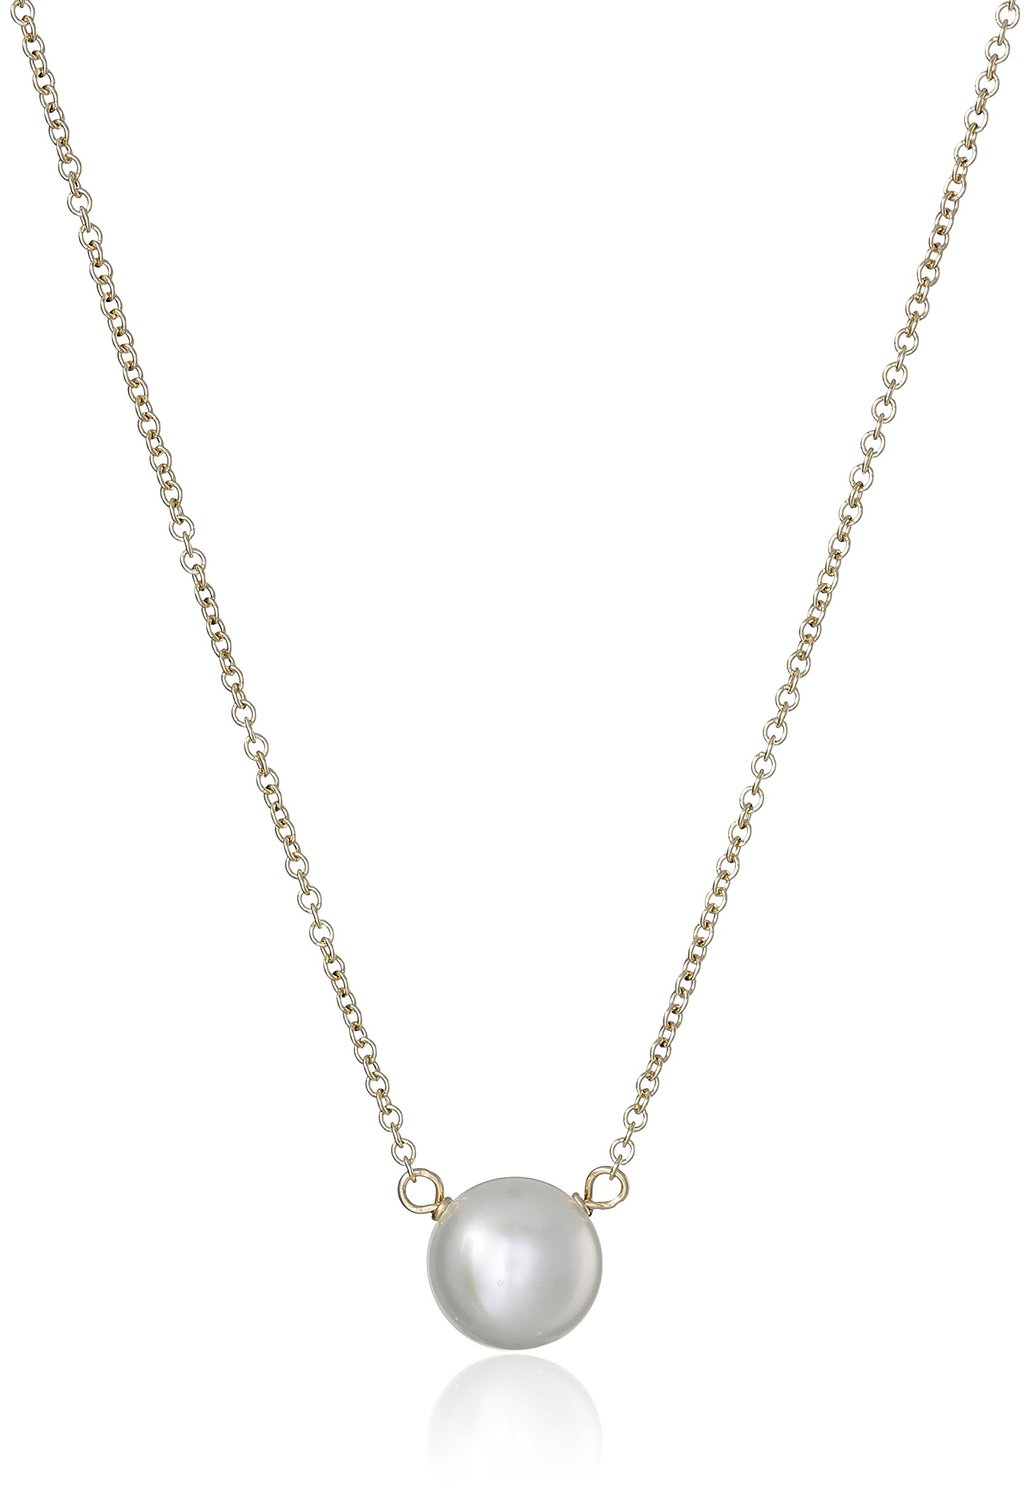 Dogeared Pearls of Love Gold 8mm Freshwater Pearl Necklace - P02018